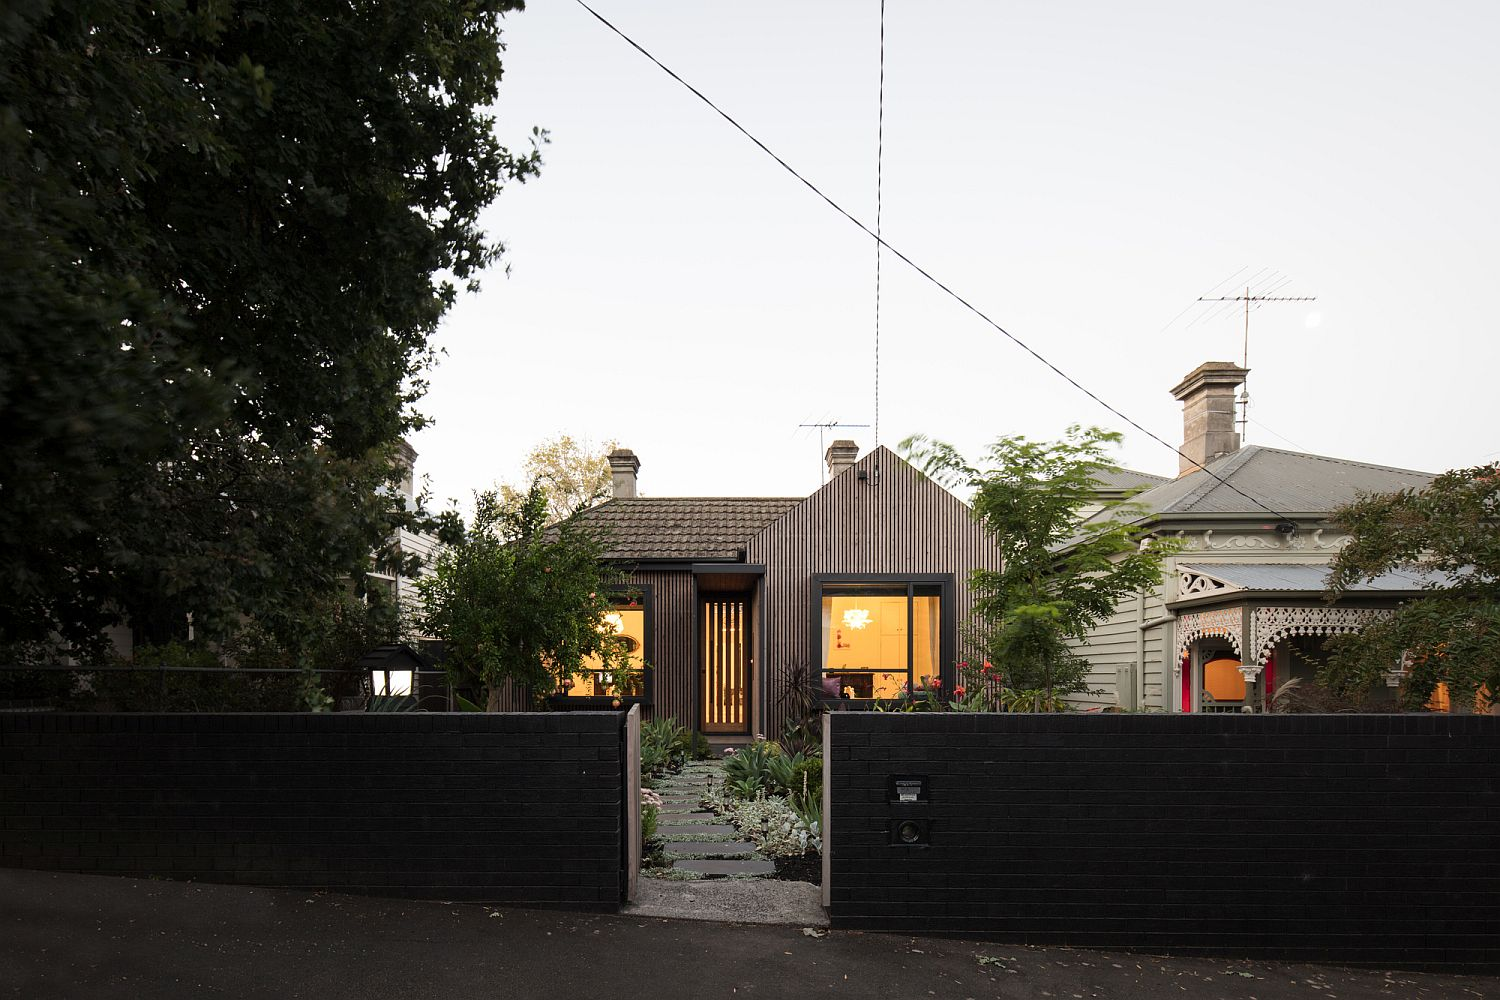 Revitalized and redone Victorian house in Melbourne with a smart rear extension